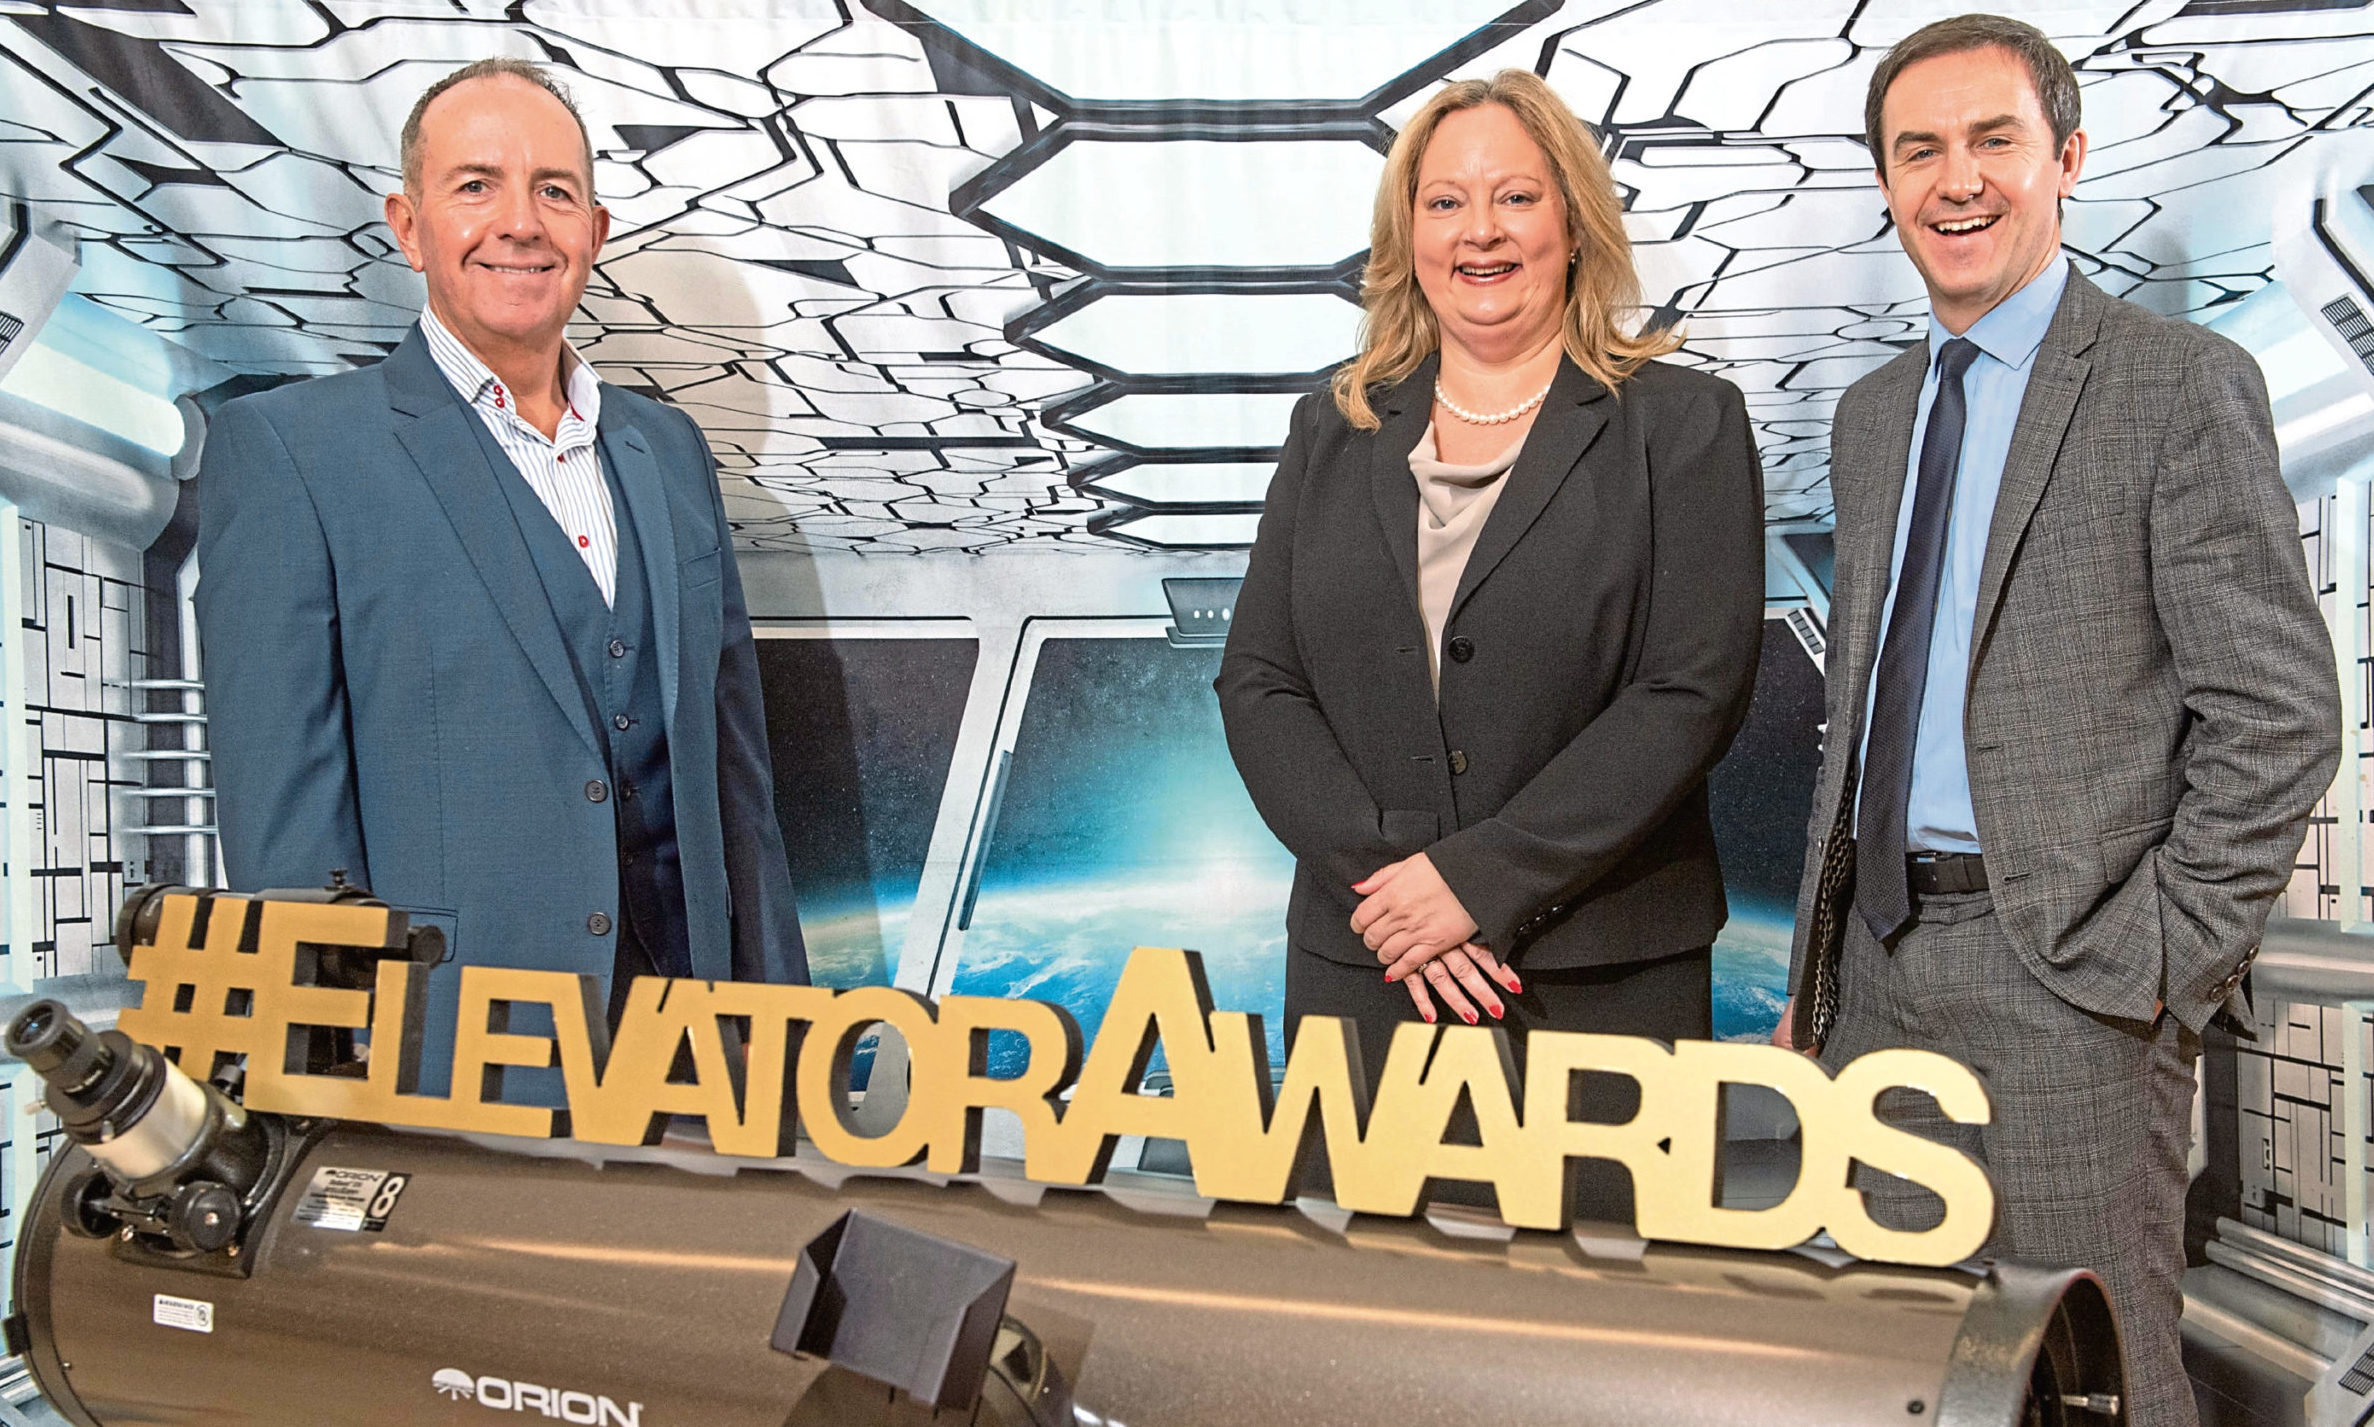 Photo Caption: L-R: Professor Gary McEwan, Elevator CEO, Eileen Tocher Relationship Director, Commercial Banking at Royal Bank of Scotland and Russell Whyte Director, Commercial Banking at Royal Bank of Scotland.